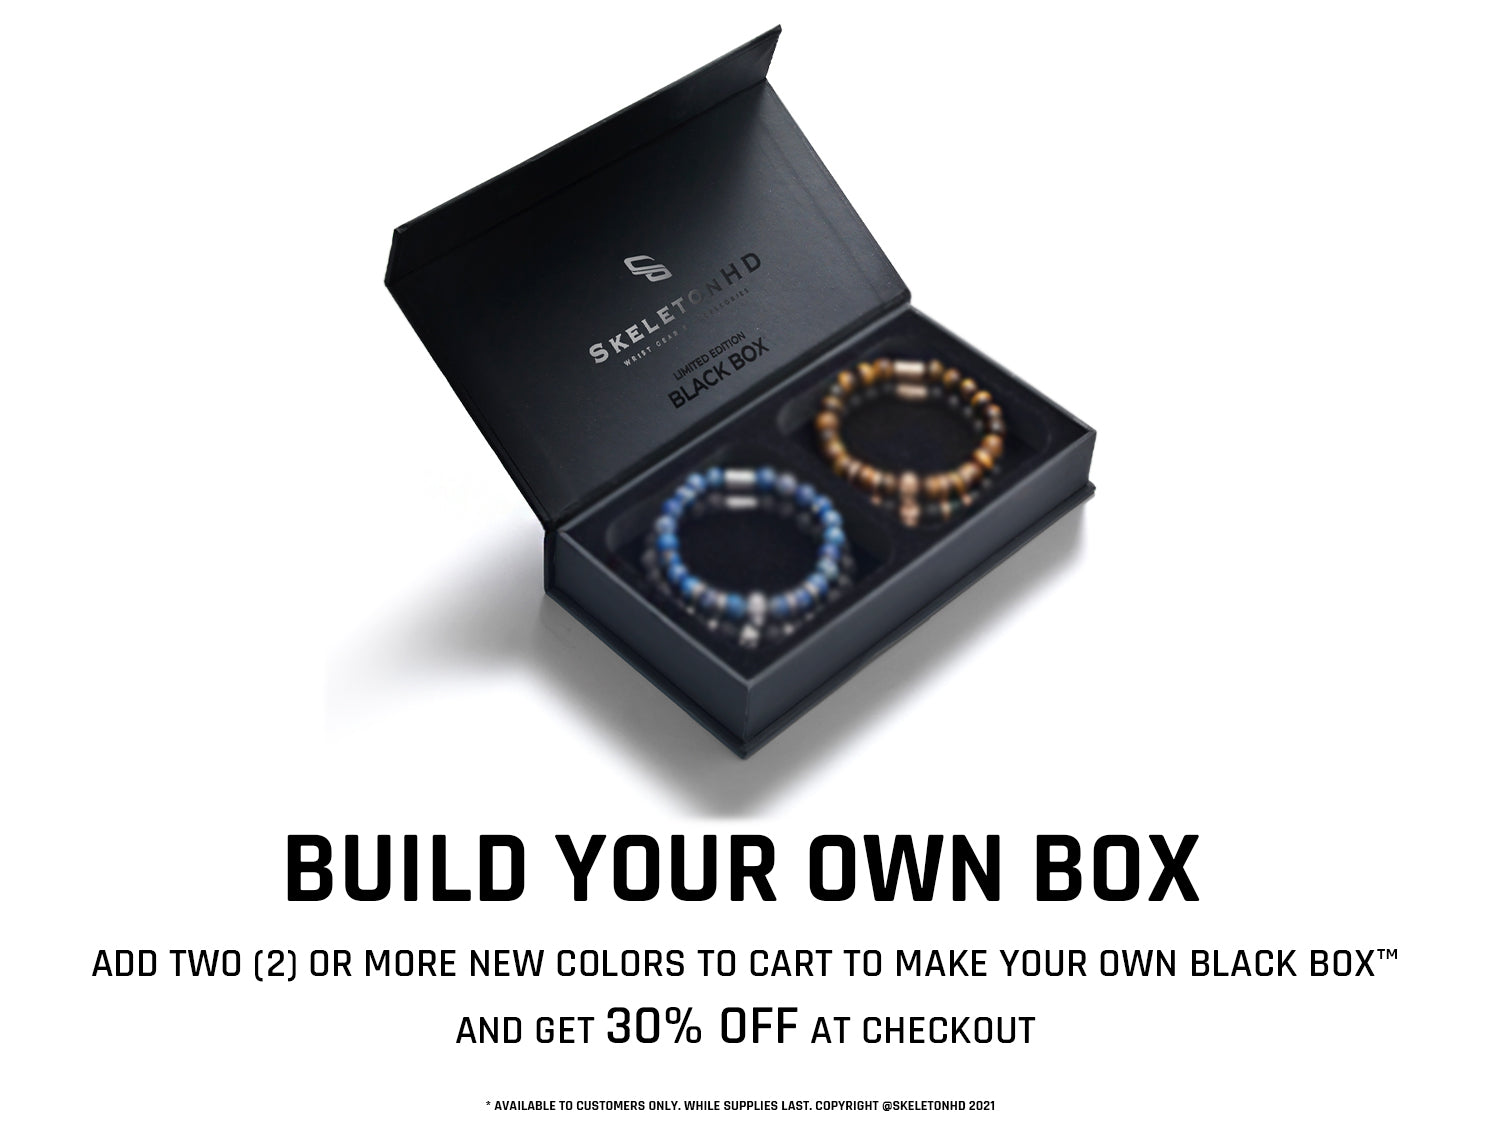 SkeletonHD- Build your own box